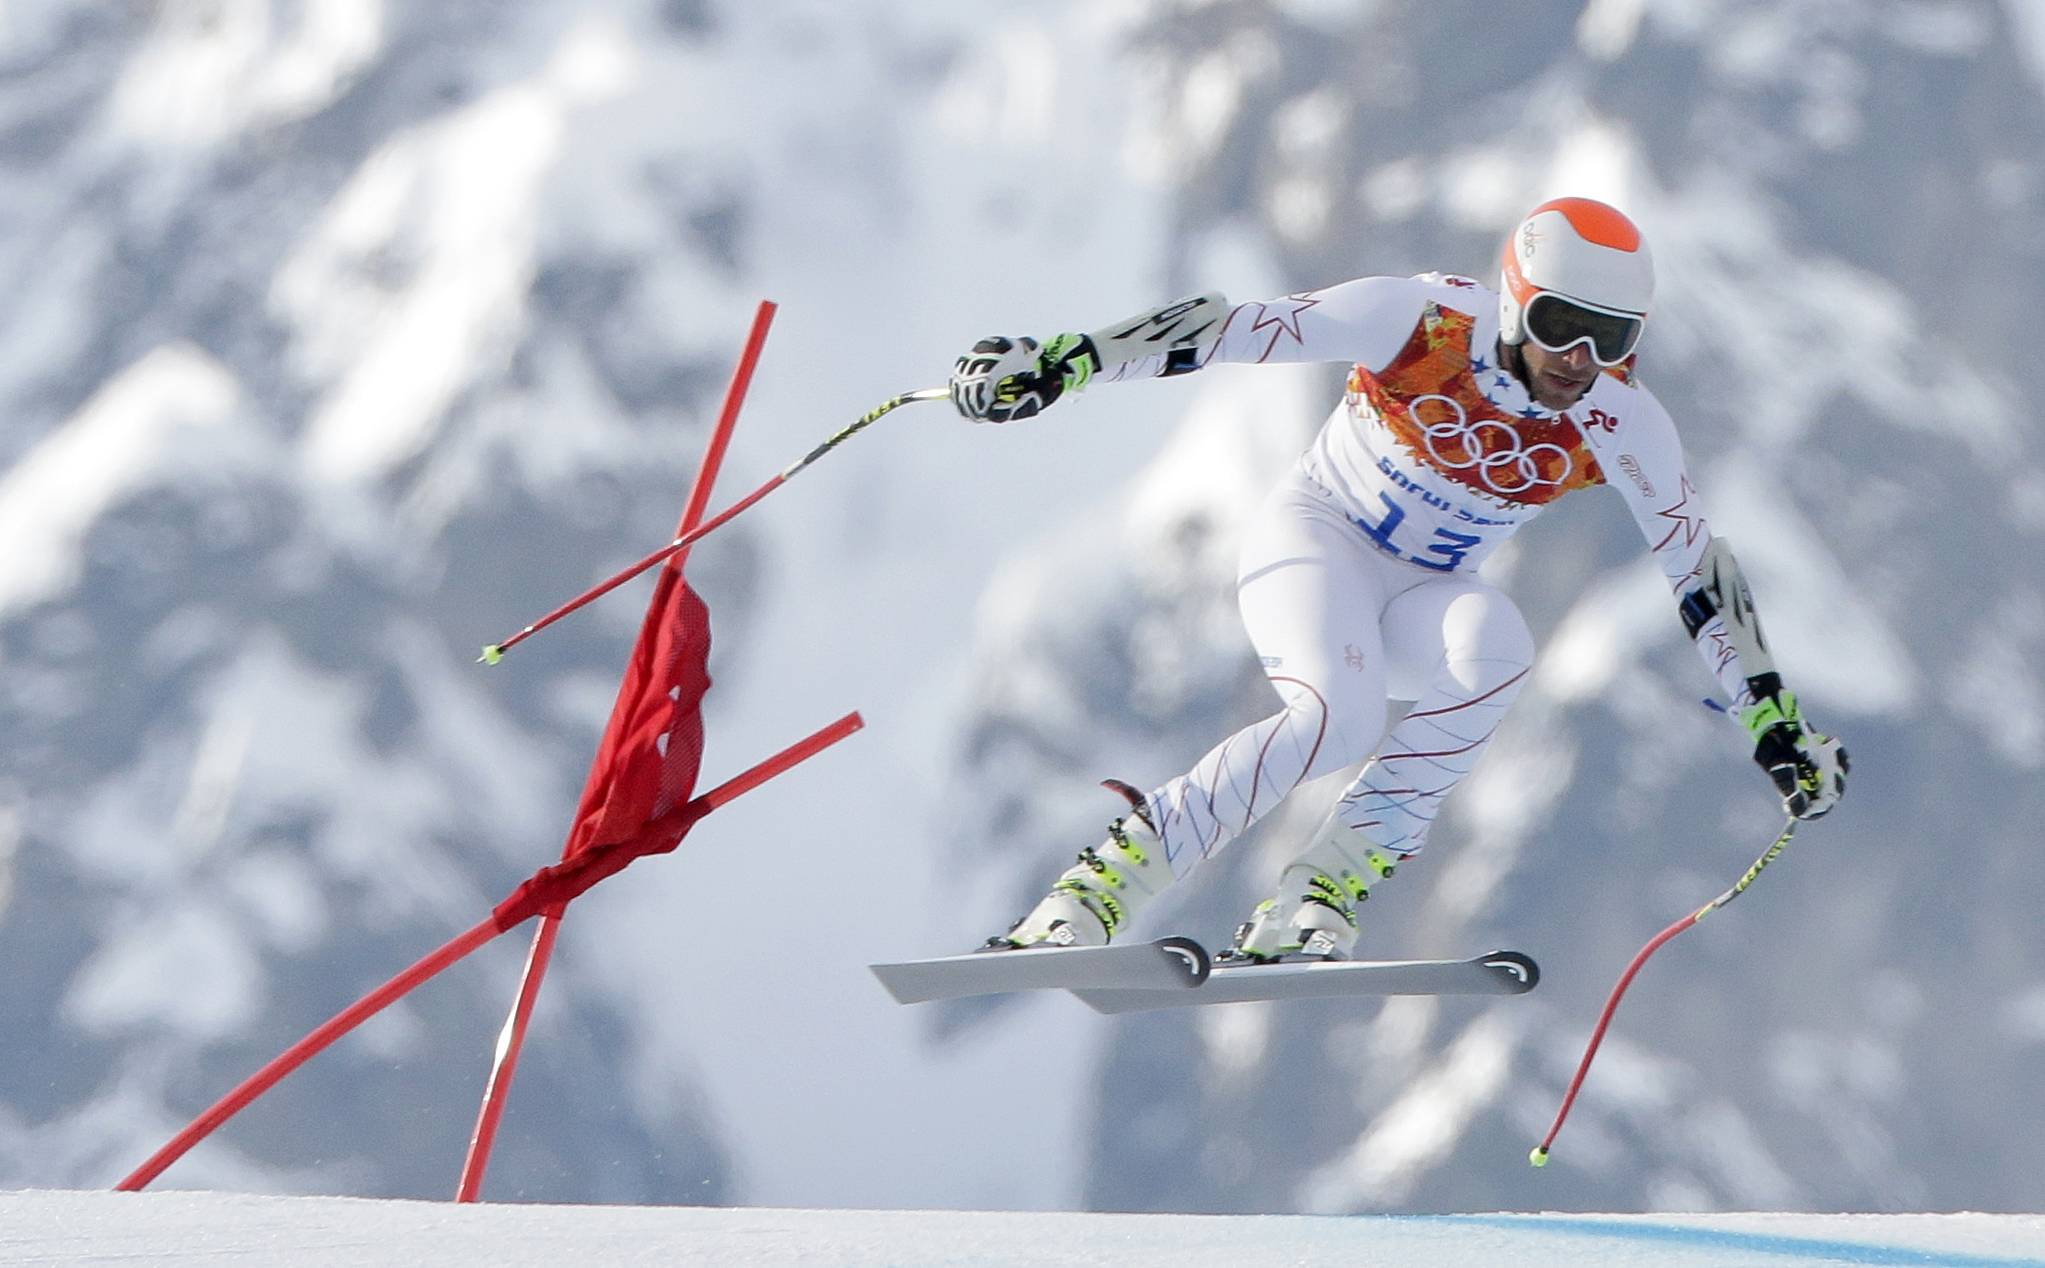 Joint bronze medal winner Bode Miller of the United States makes a jump in the men's super-G at the Sochi 2014 Winter Olympics, Sunday, Feb. 16, 2014, in Krasnaya Polyana, Russia.